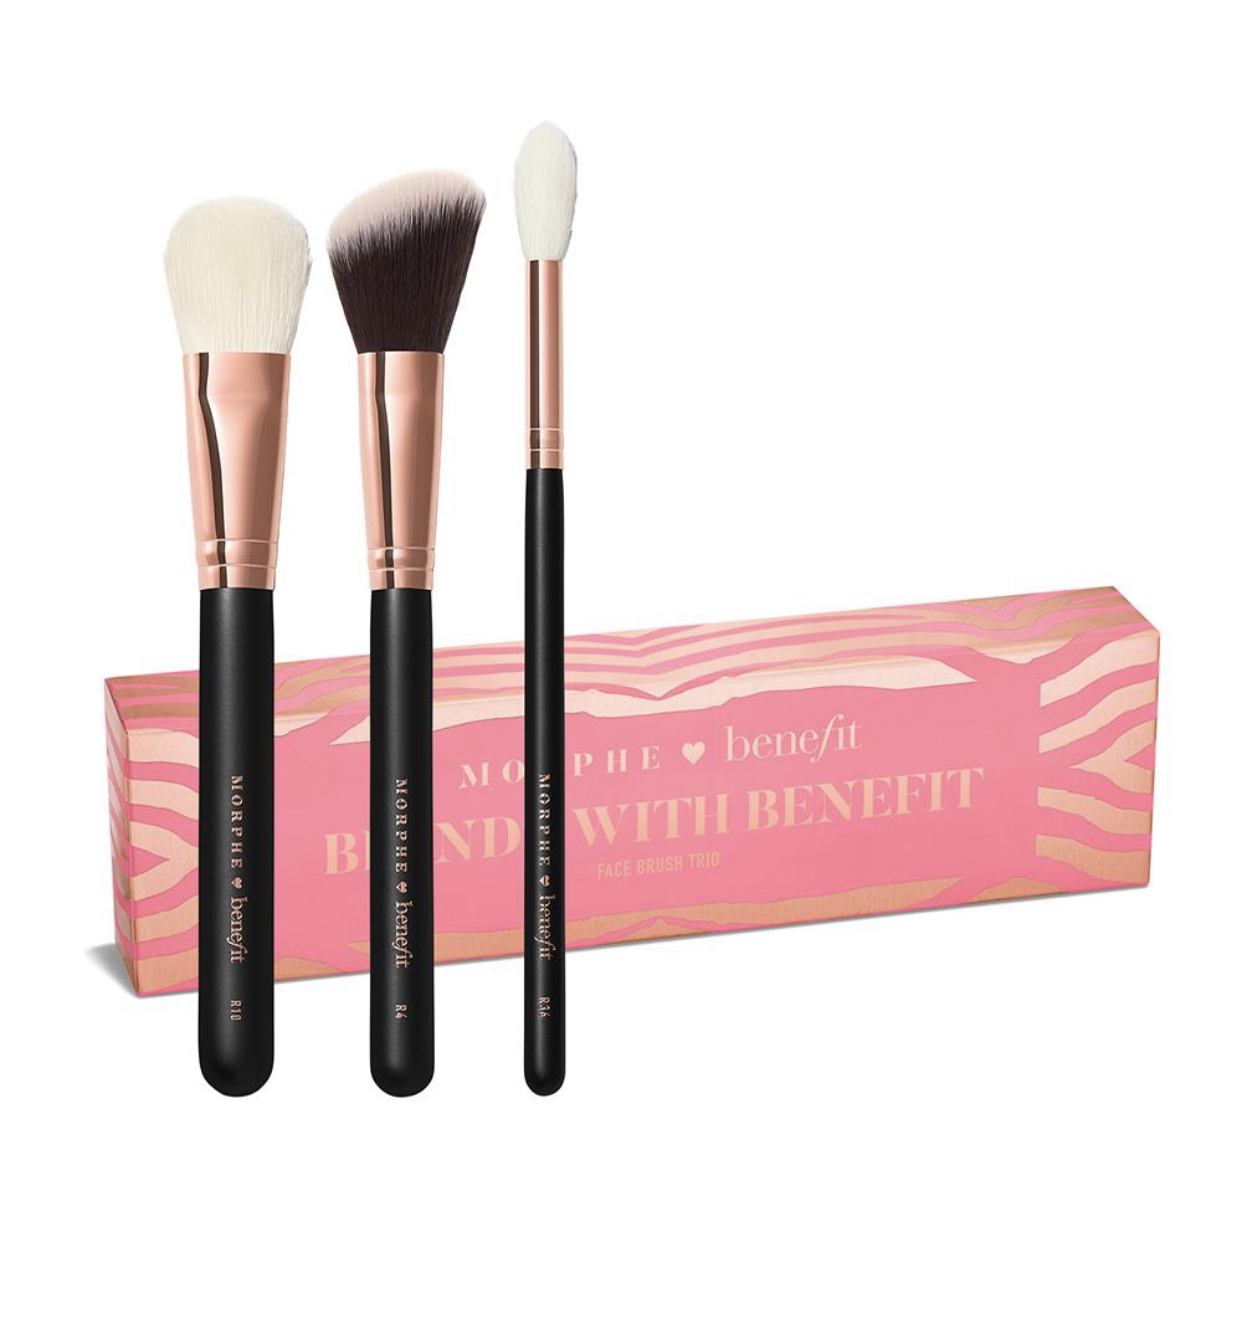 Benefit x Morphe Blends With Benefit Brush Trio Set